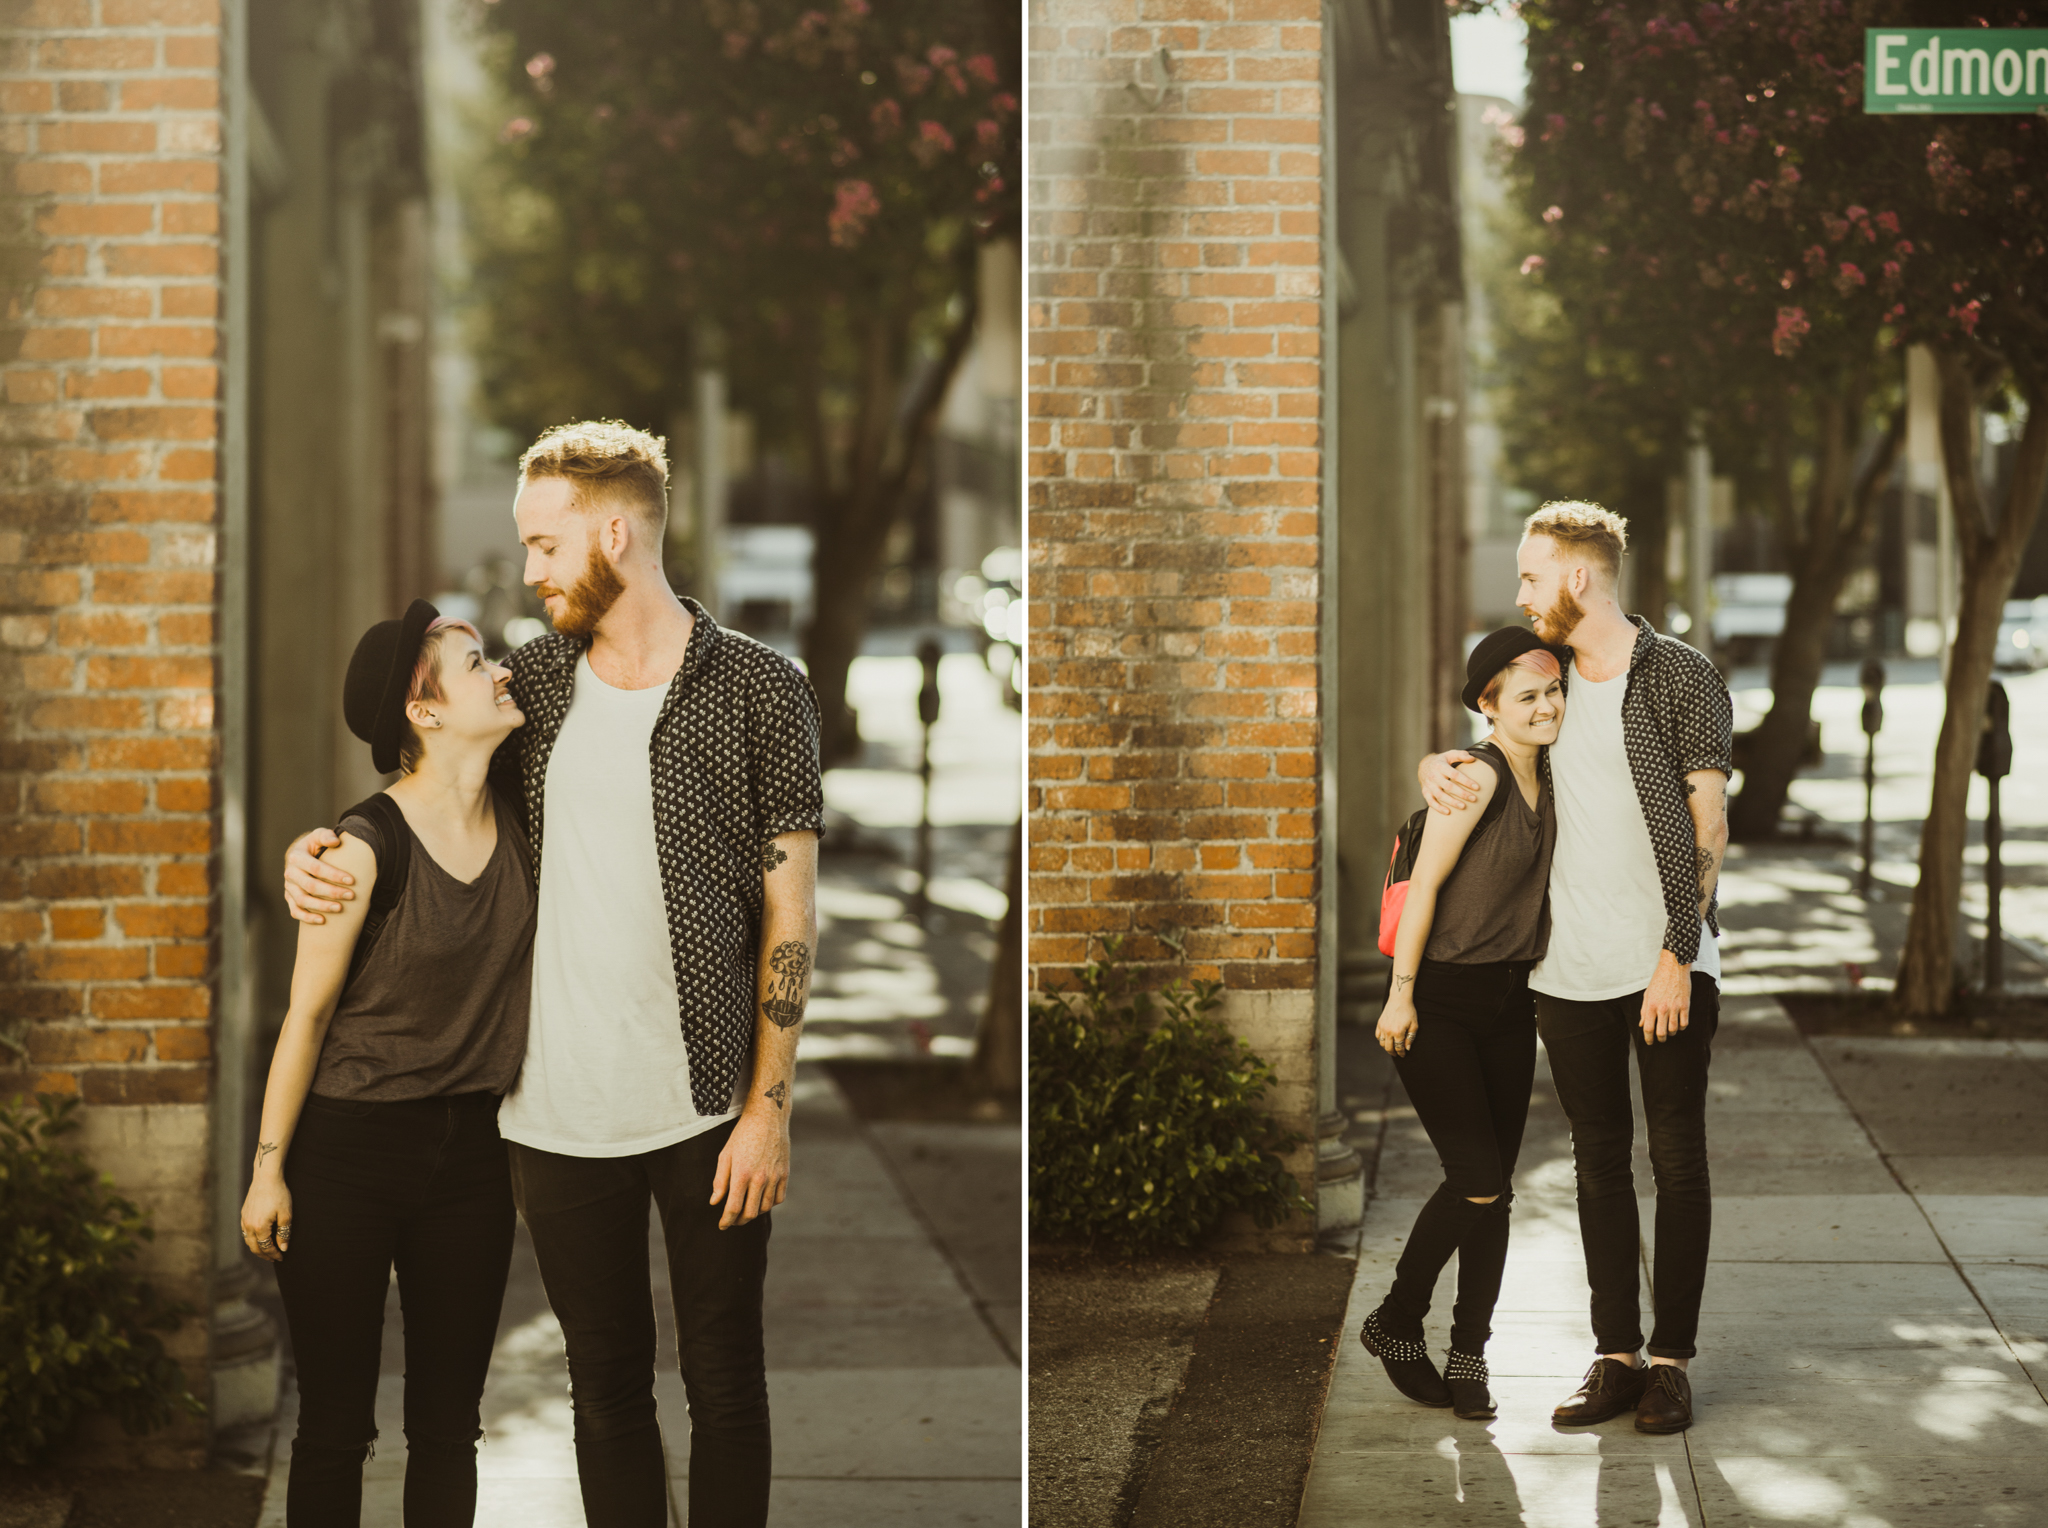 ©Isaiah-&-Taylor-Photography---Nate-+-Drea-Engagement-Proposal,-Antique-Shop,-Pasadena-025-2.jpg